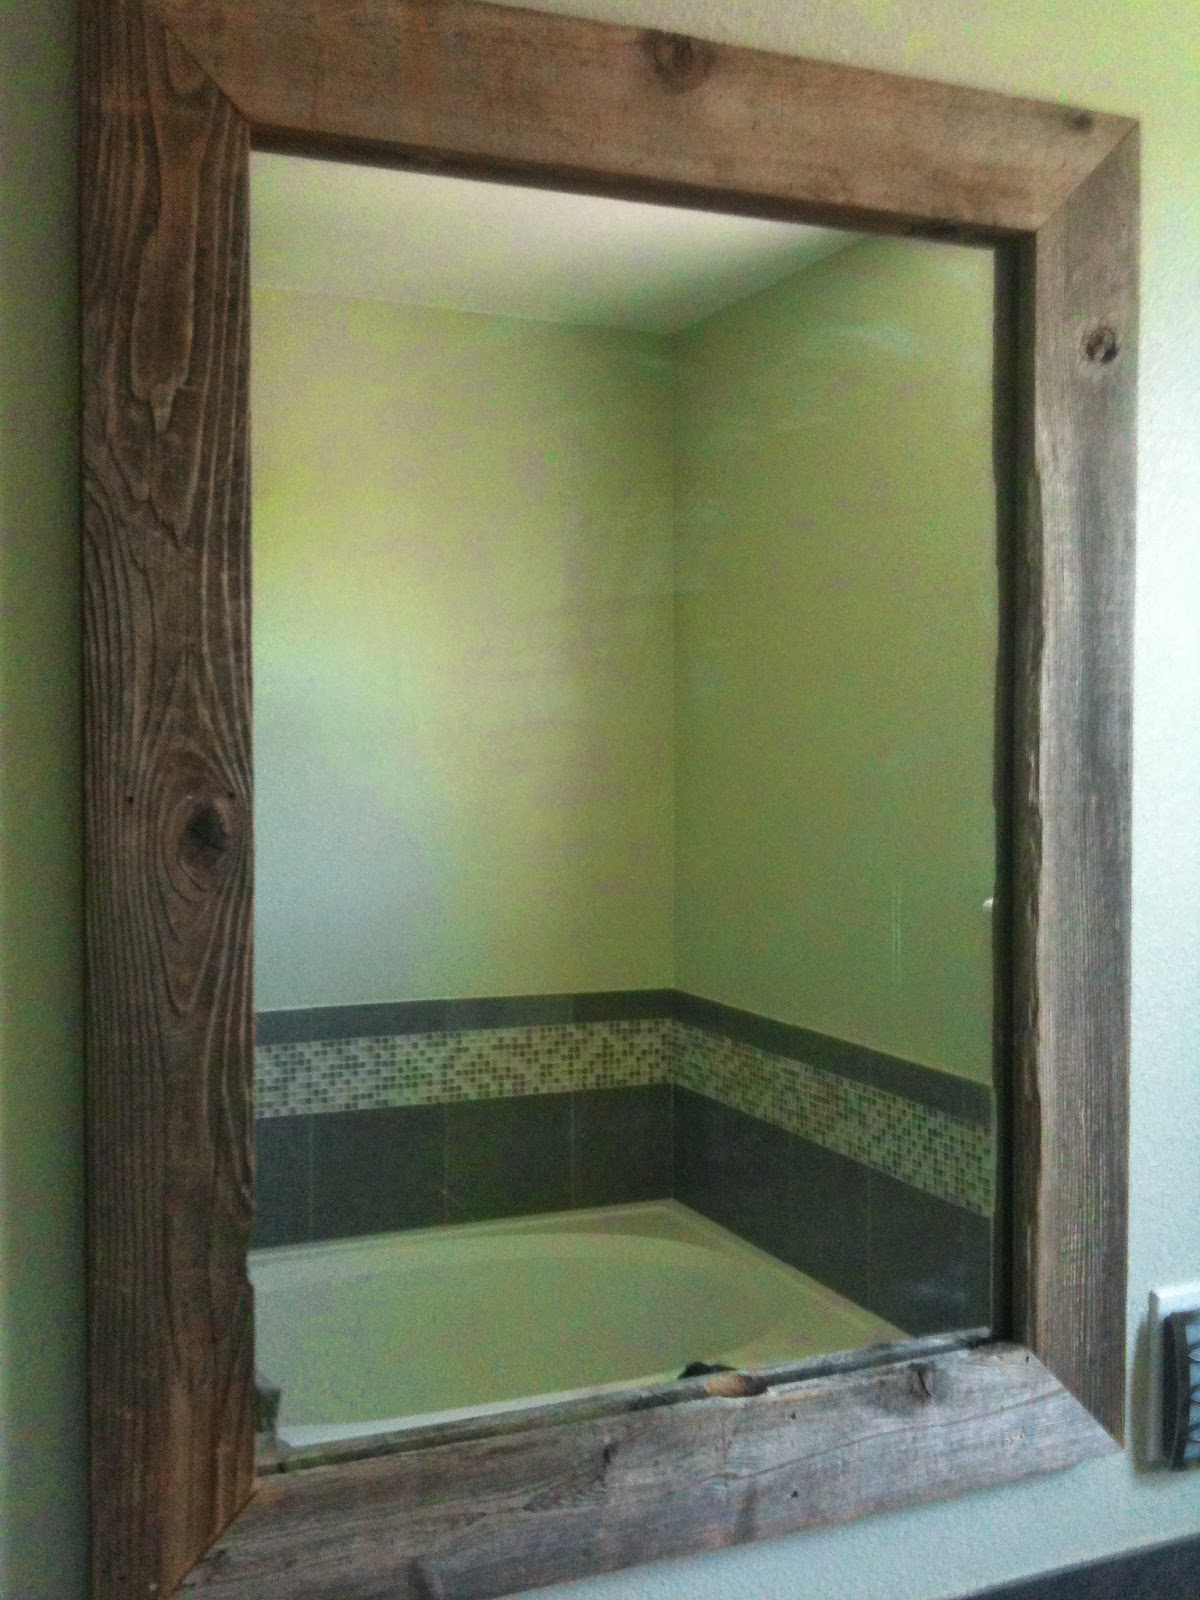 Oma Socks: Our New Barnwood DIY Mirrors